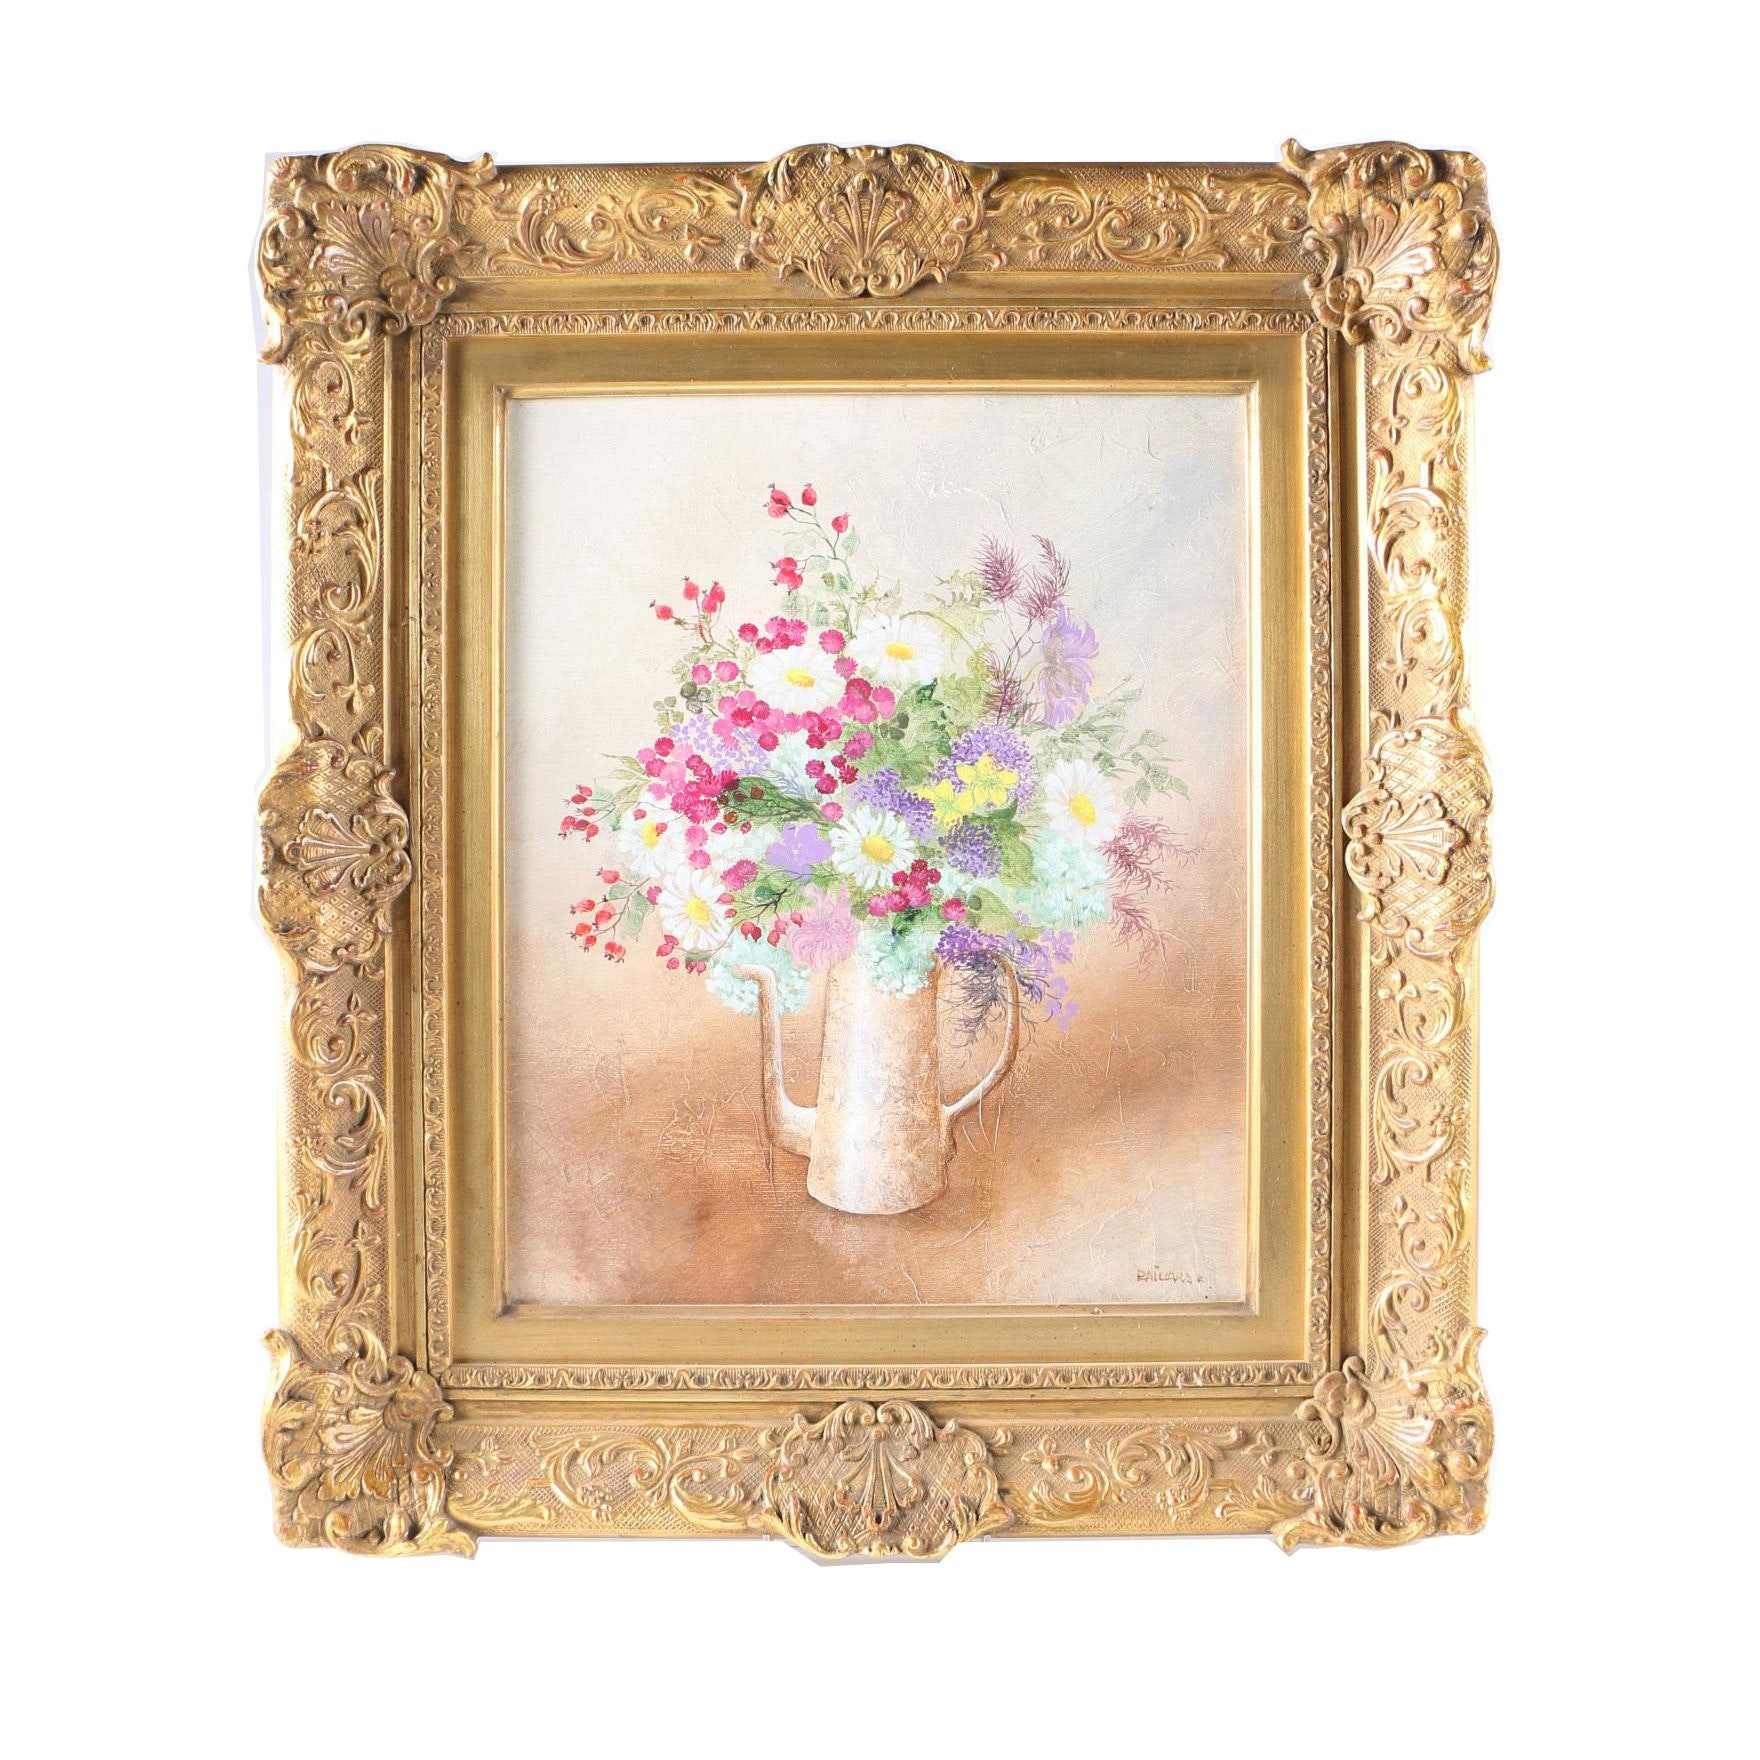 Paillard Oil Painting on Canvas of Floral Arrangement